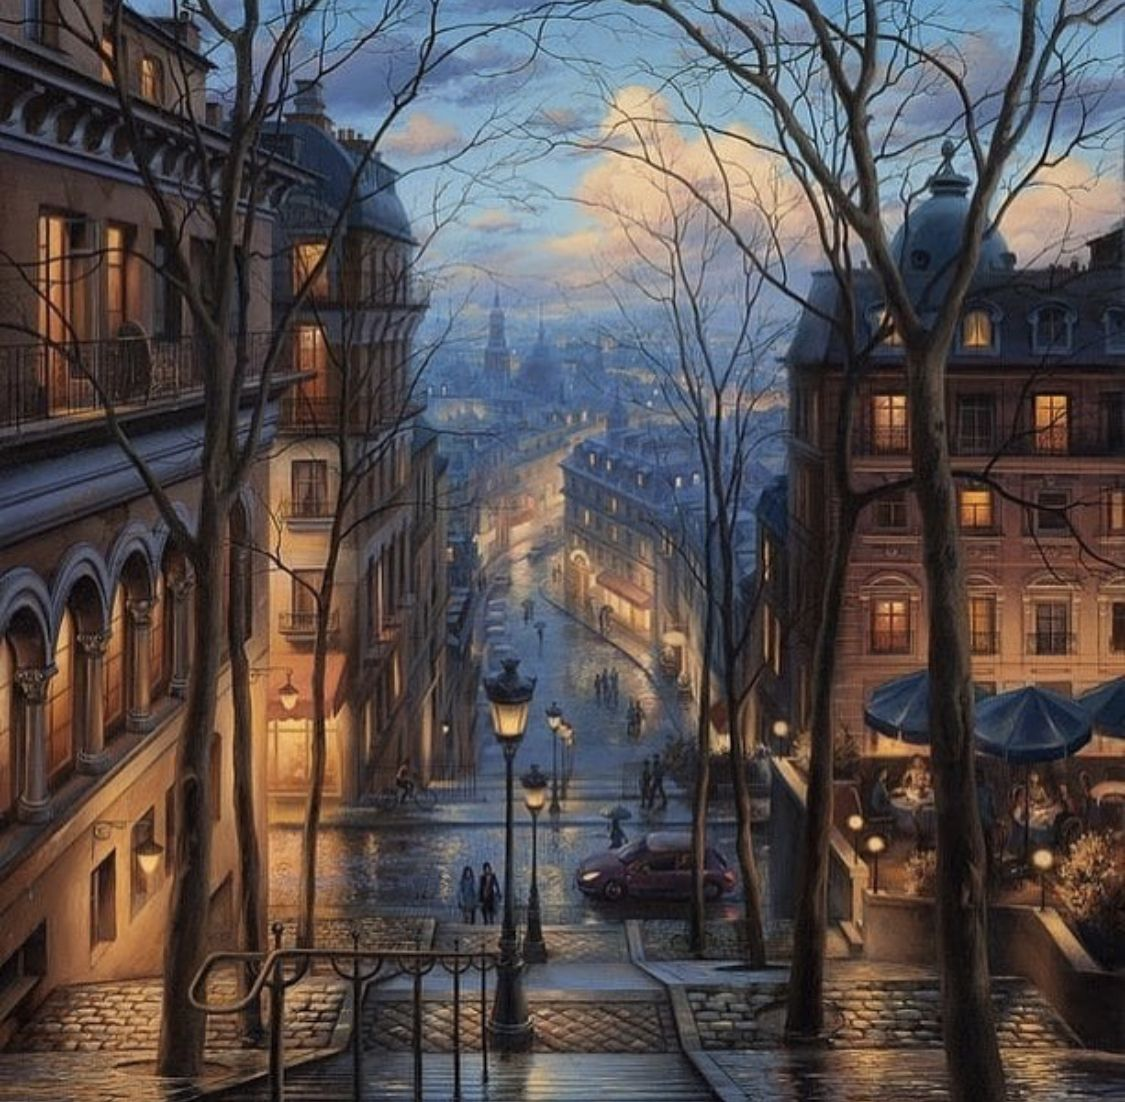 Pin By Maureen Mcmenamin On Favorite Places Spaces Scenery Pictures Paris At Night Paris Rooftops